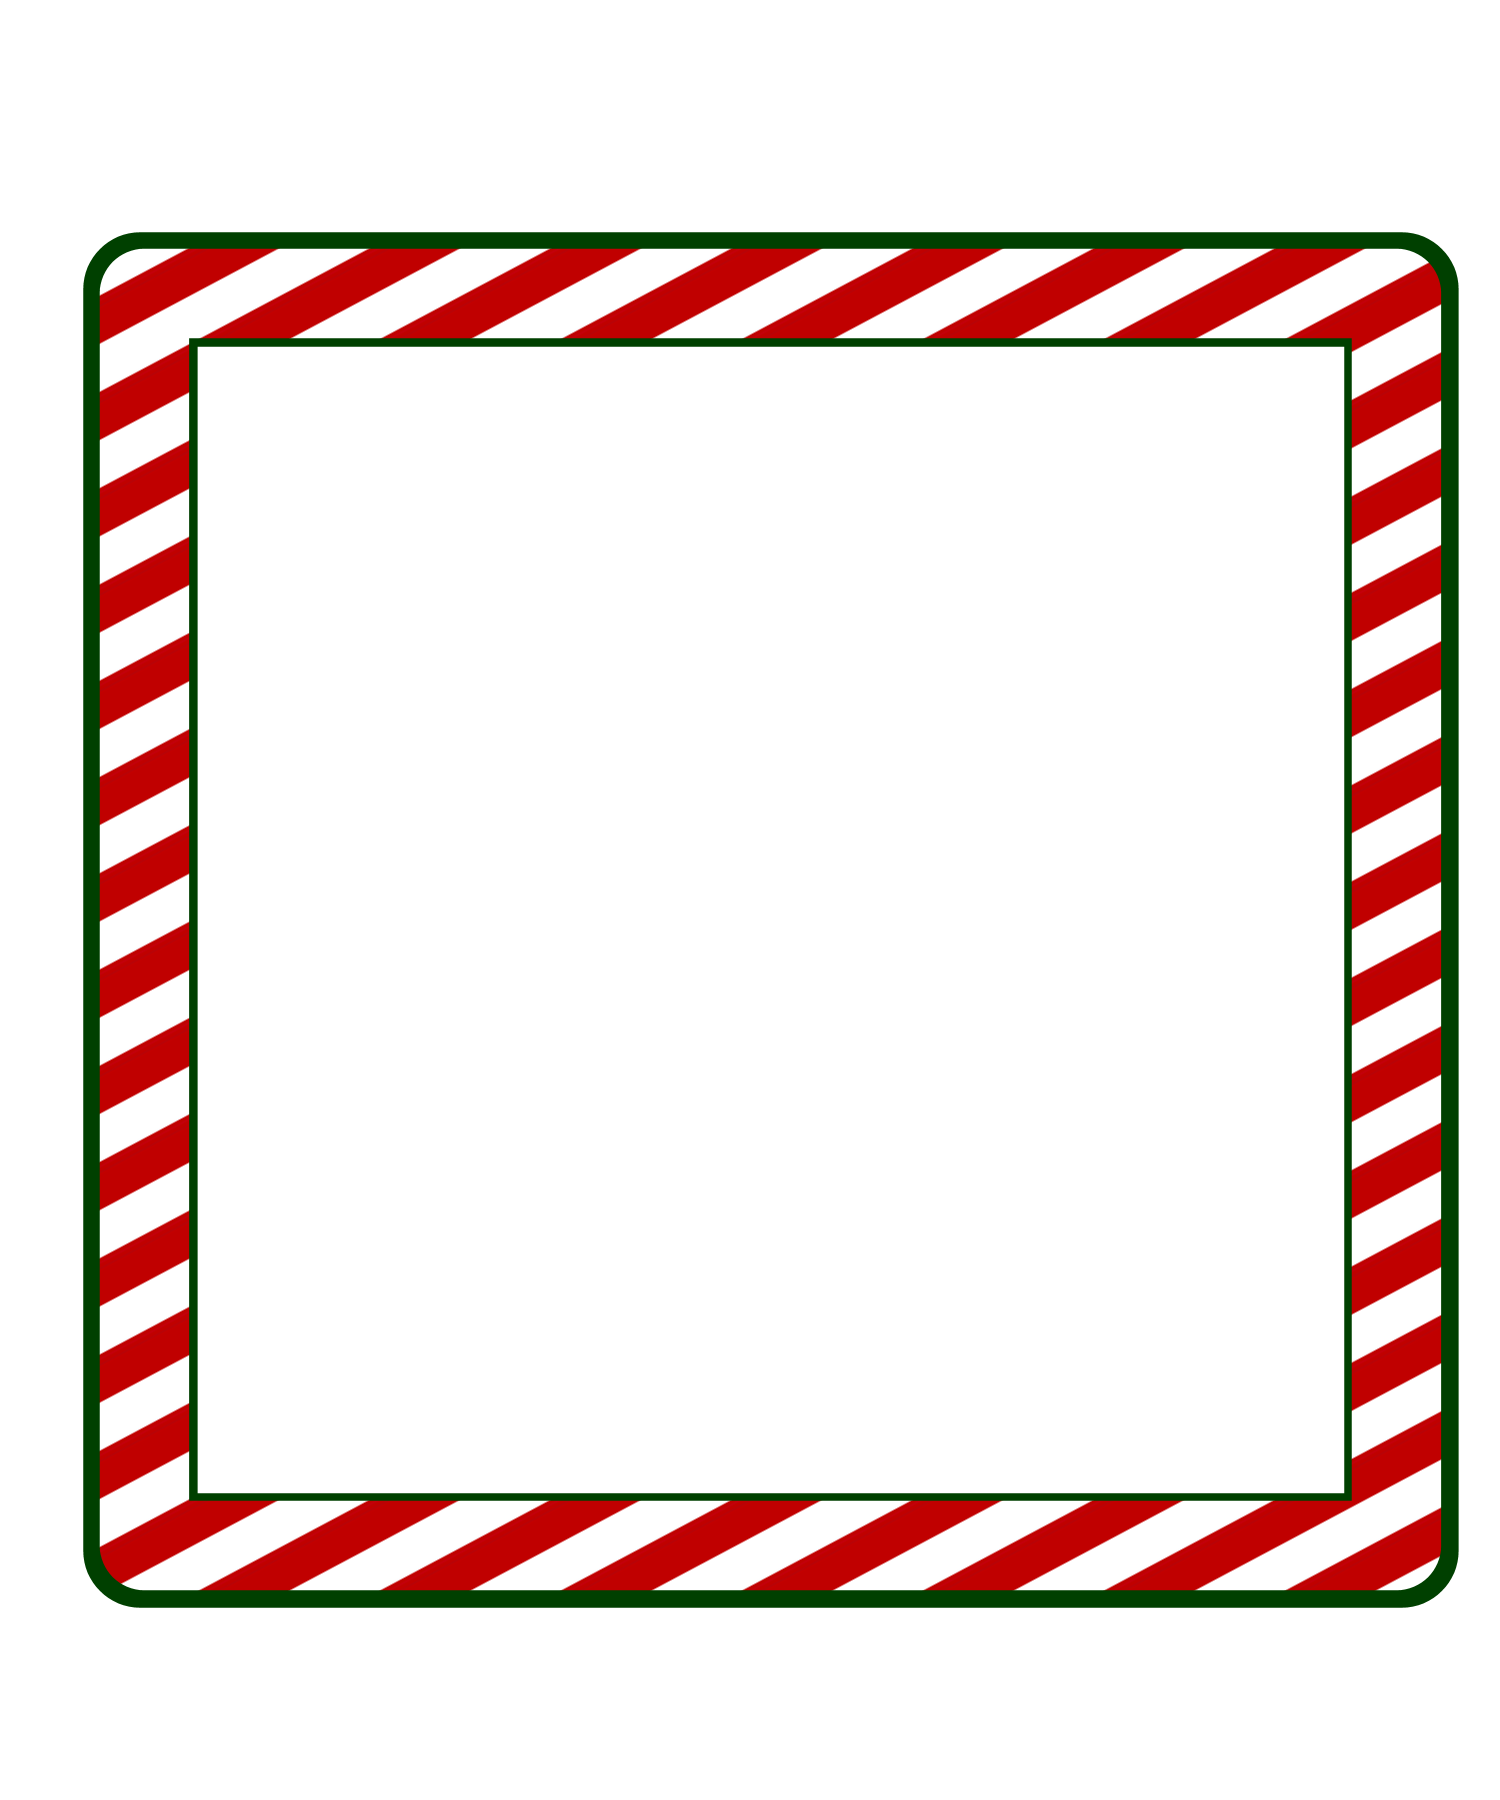 Christmas Frames And Borders Png - ClipArt Best